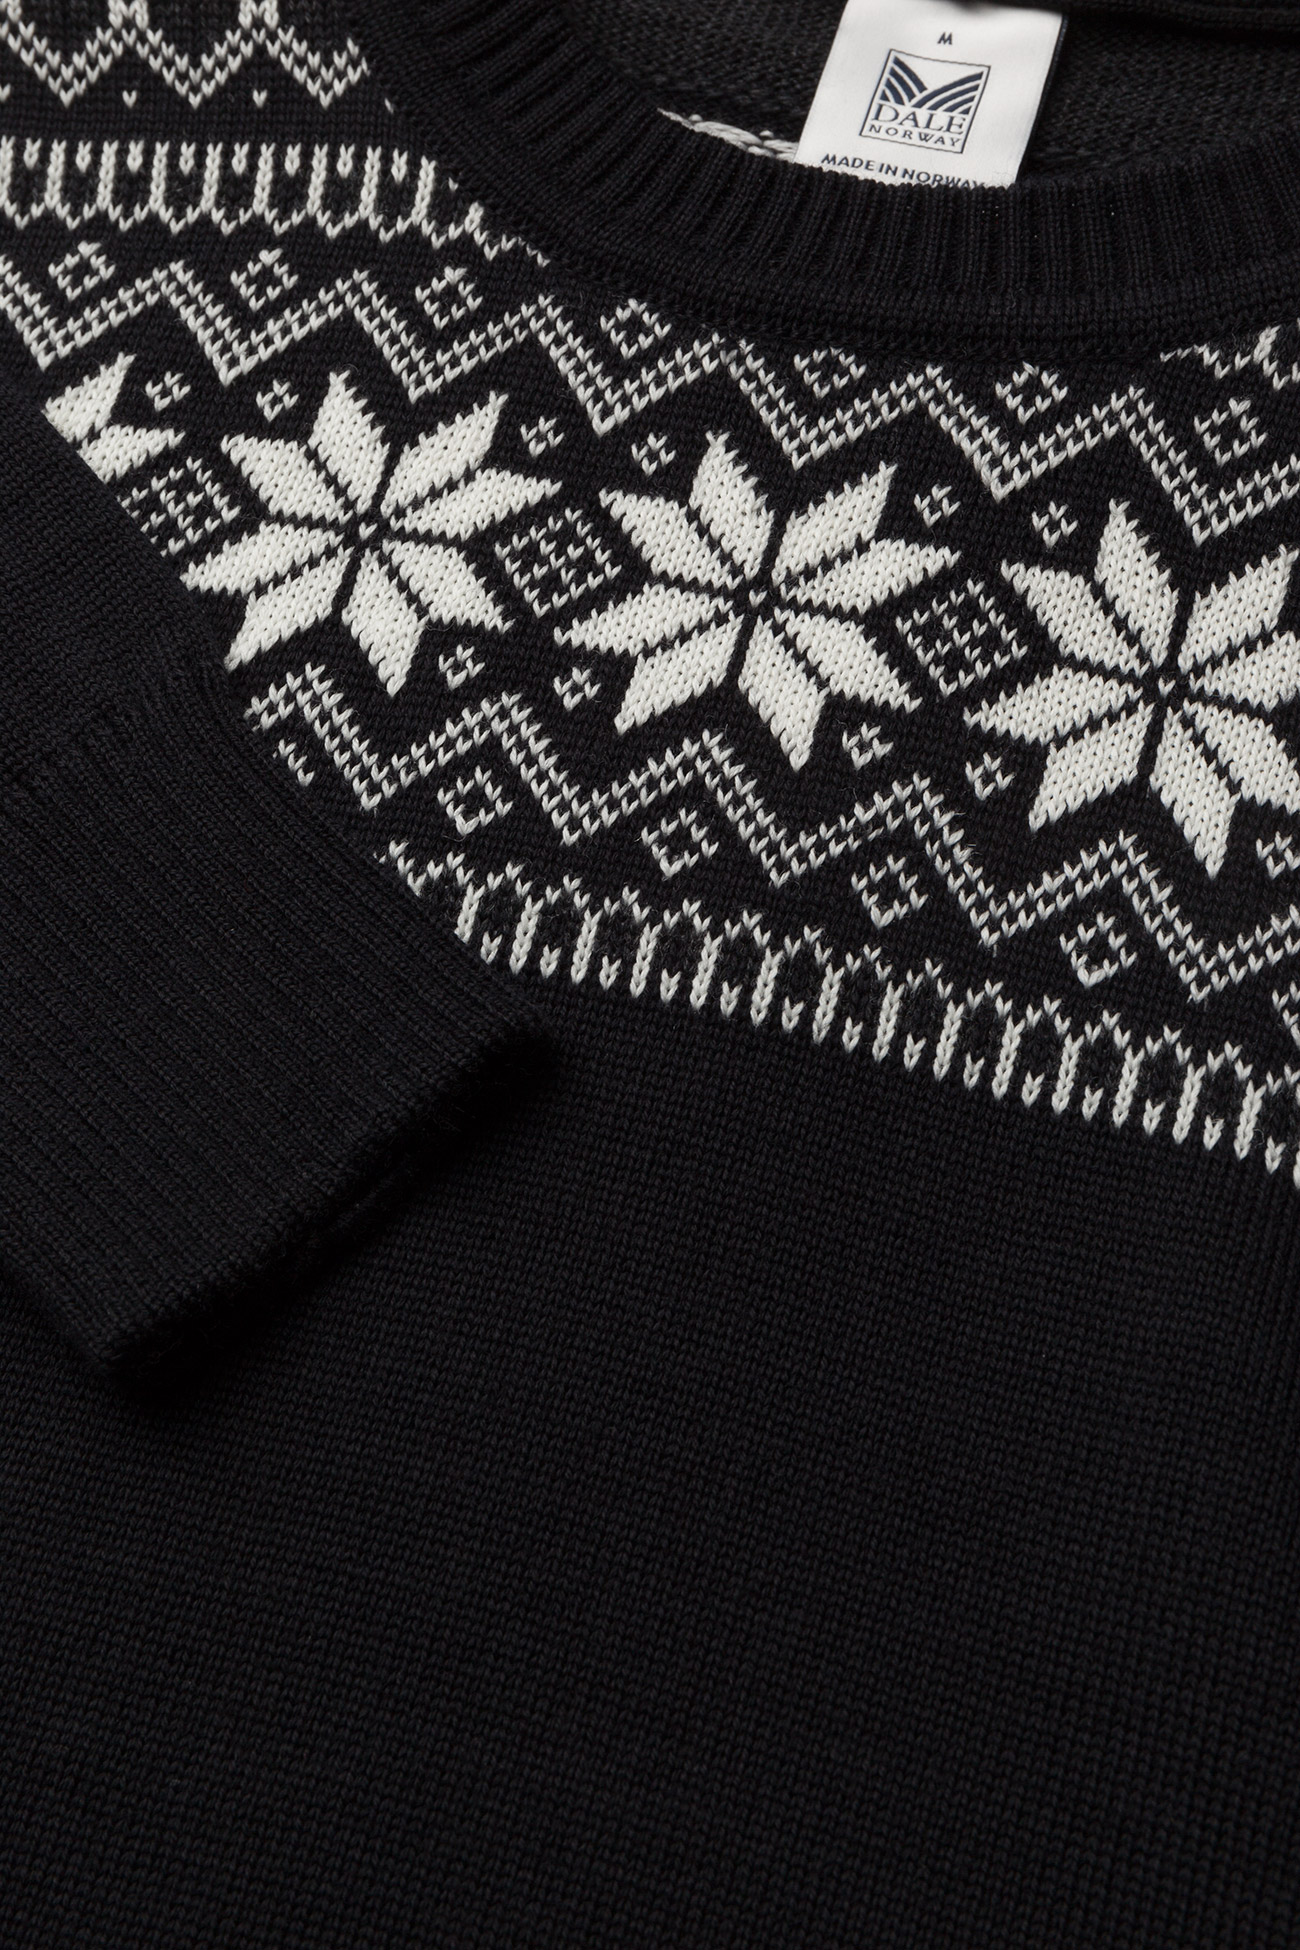 Dale of Norway Garmisch Masc Sweater - Strikkevarer BLACK/DARK CHARCOAL/OFF WHITE - Menn Klær